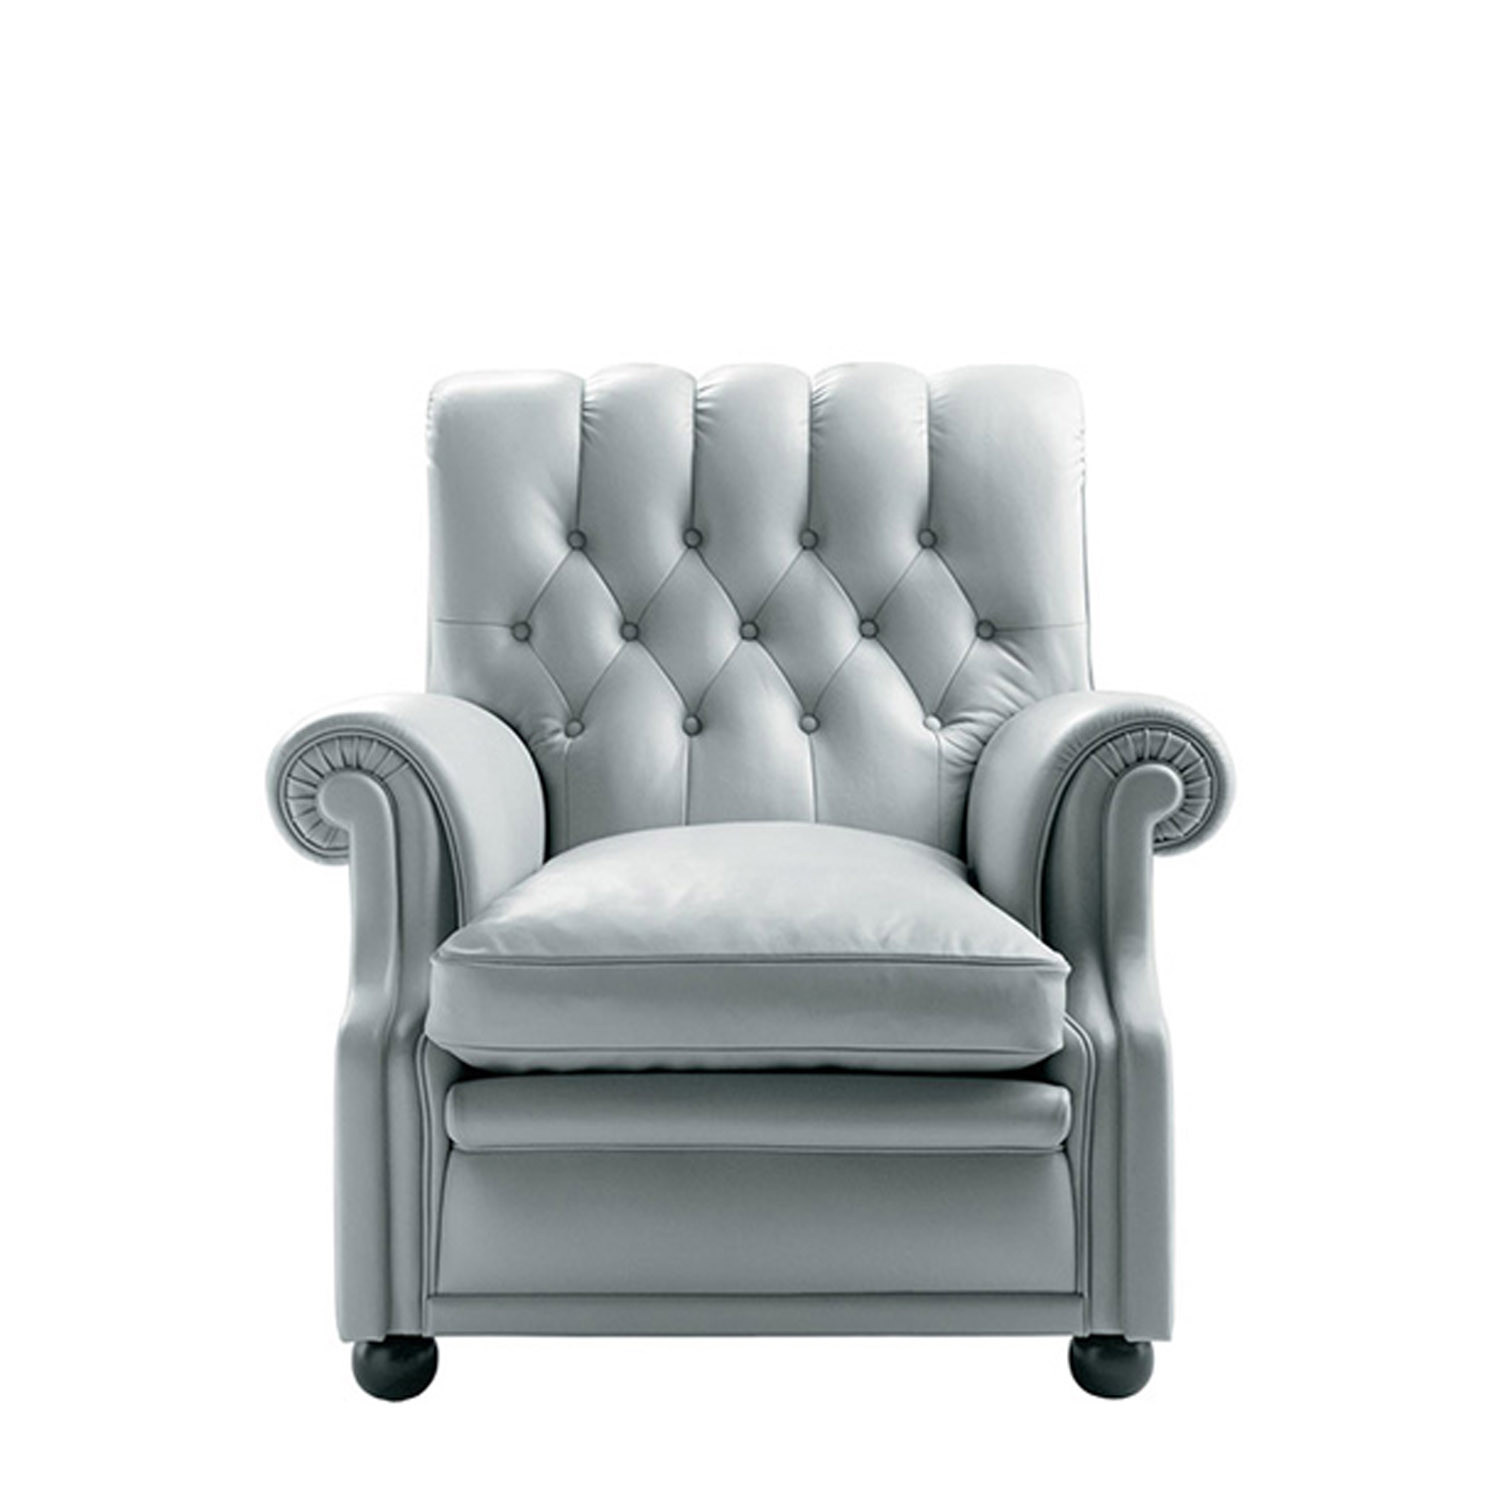 Bonnie Armchairs - White Leather